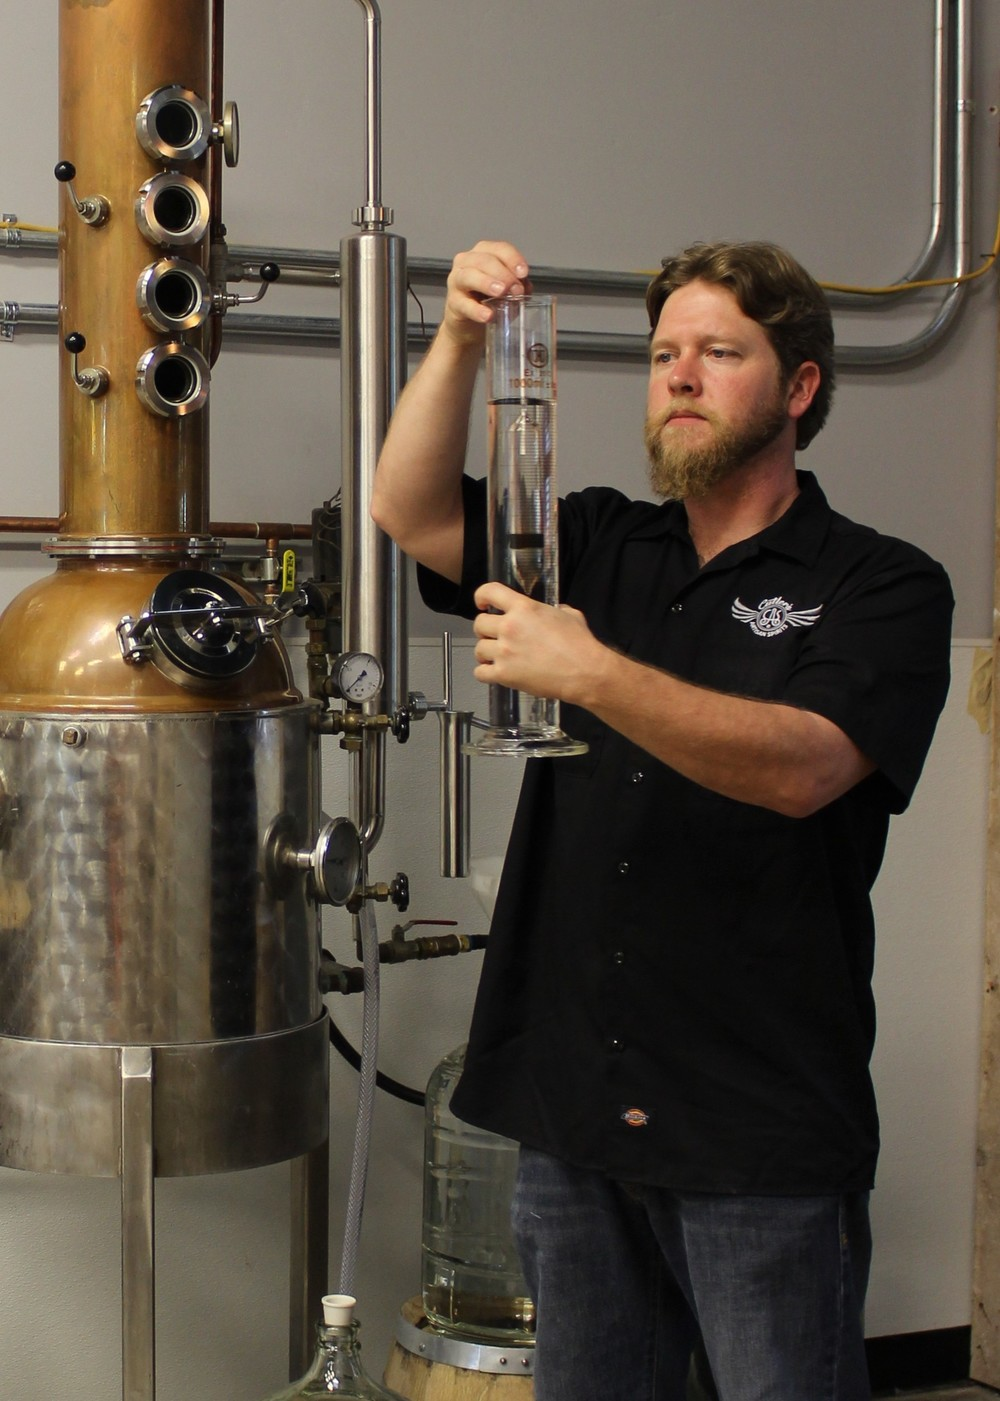 Ian Cutler's family history is full of hooch. His is the first licensed distillery in the Santa Barbara area since Prohibition. Photo courtesy Cutler's Artisan Distillery.